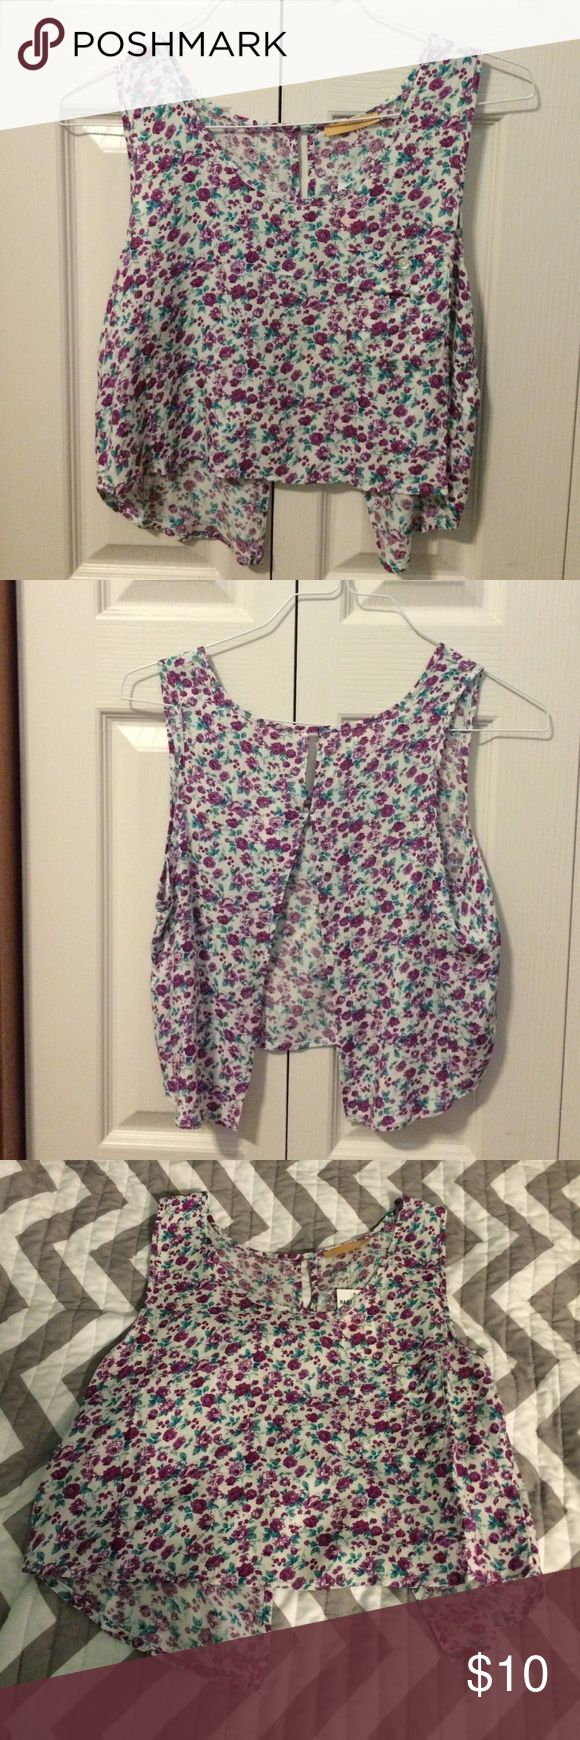 Ragstock Cropped Loose Tank Top Light floral material with an open back, never worn. YMI Tops Tank Tops